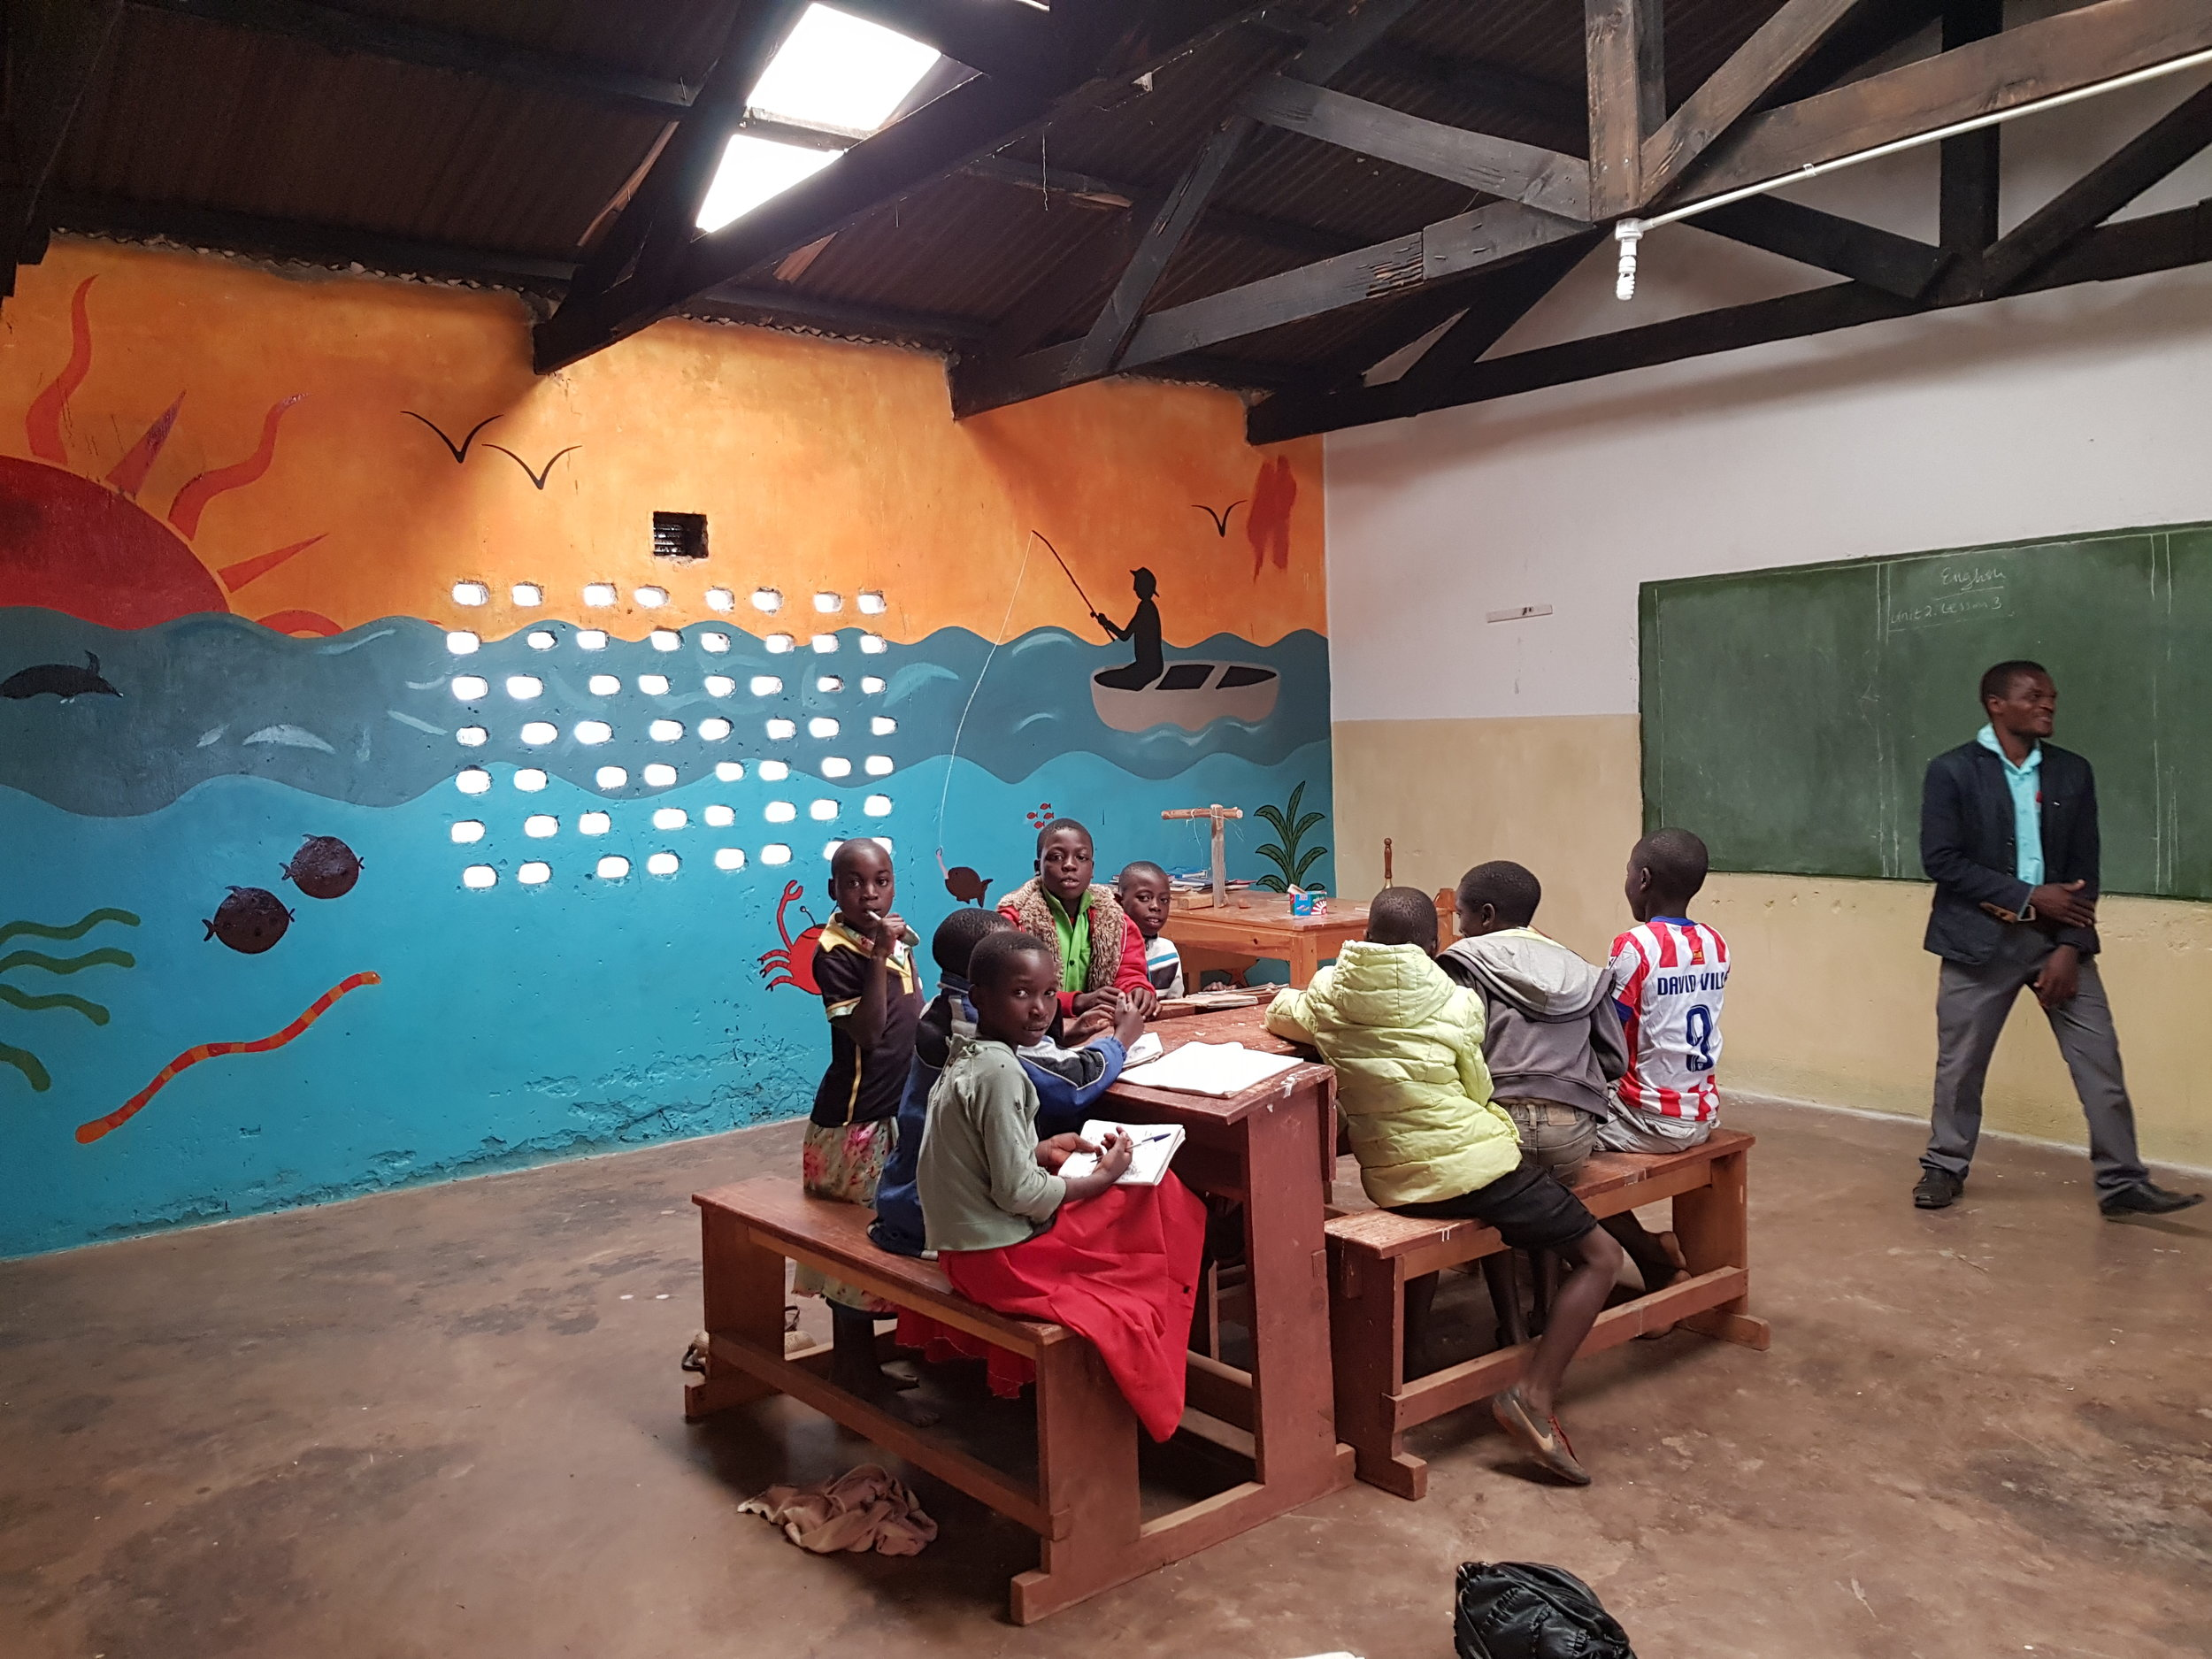 In one of the renovated classrooms at Mkoko Primary